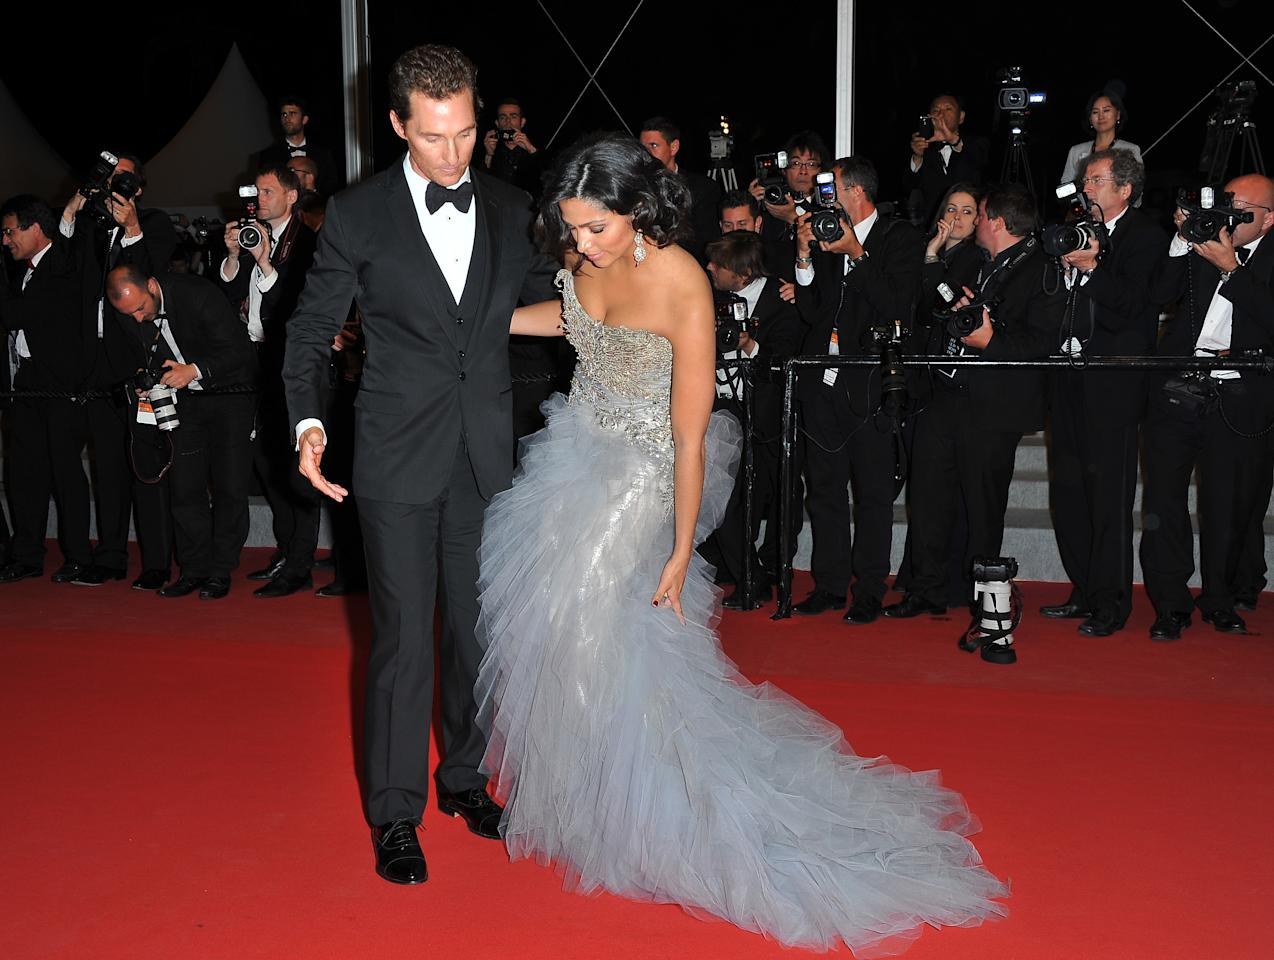 CANNES, FRANCE - MAY 26:  (L-R) Actor Matthew McConaughey and Camila Alves depart the 'Mud' Premiere during the 65th Annual Cannes Film Festival at Palais des Festivals on May 26, 2012 in Cannes, France.  (Photo by Pascal Le Segretain/Getty Images)